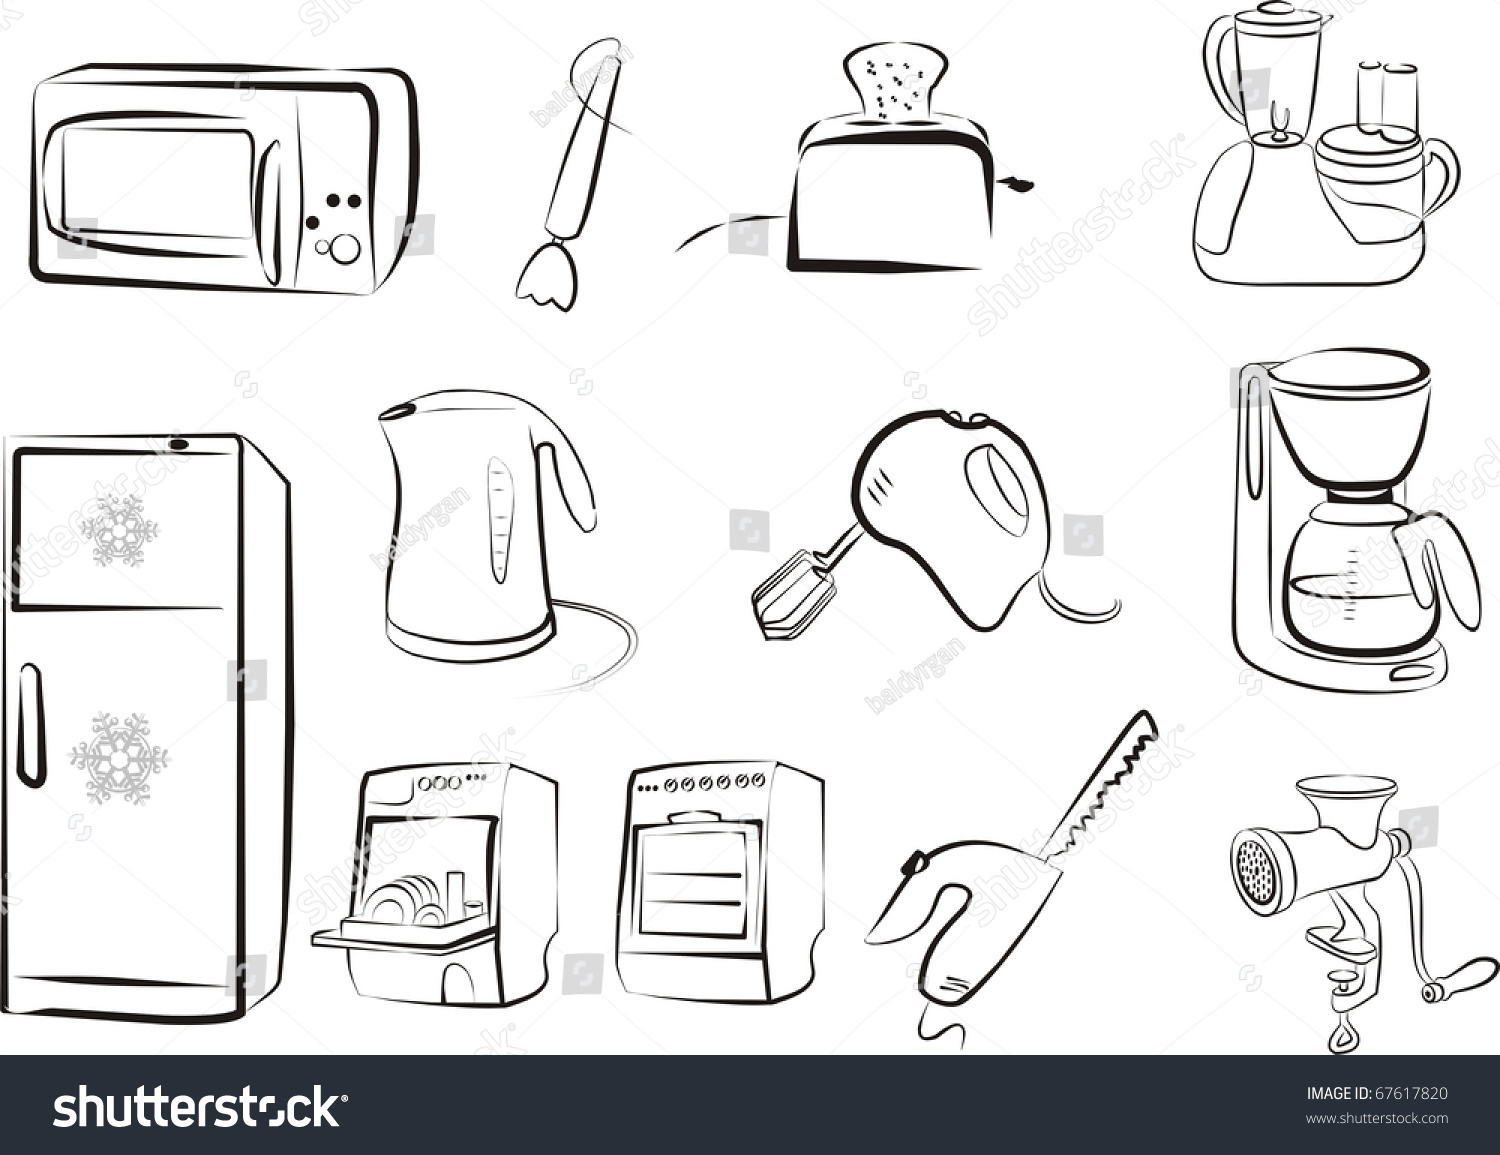 Electric Mixer Outline ~ Electric kitchen tools and devices set in black outlines